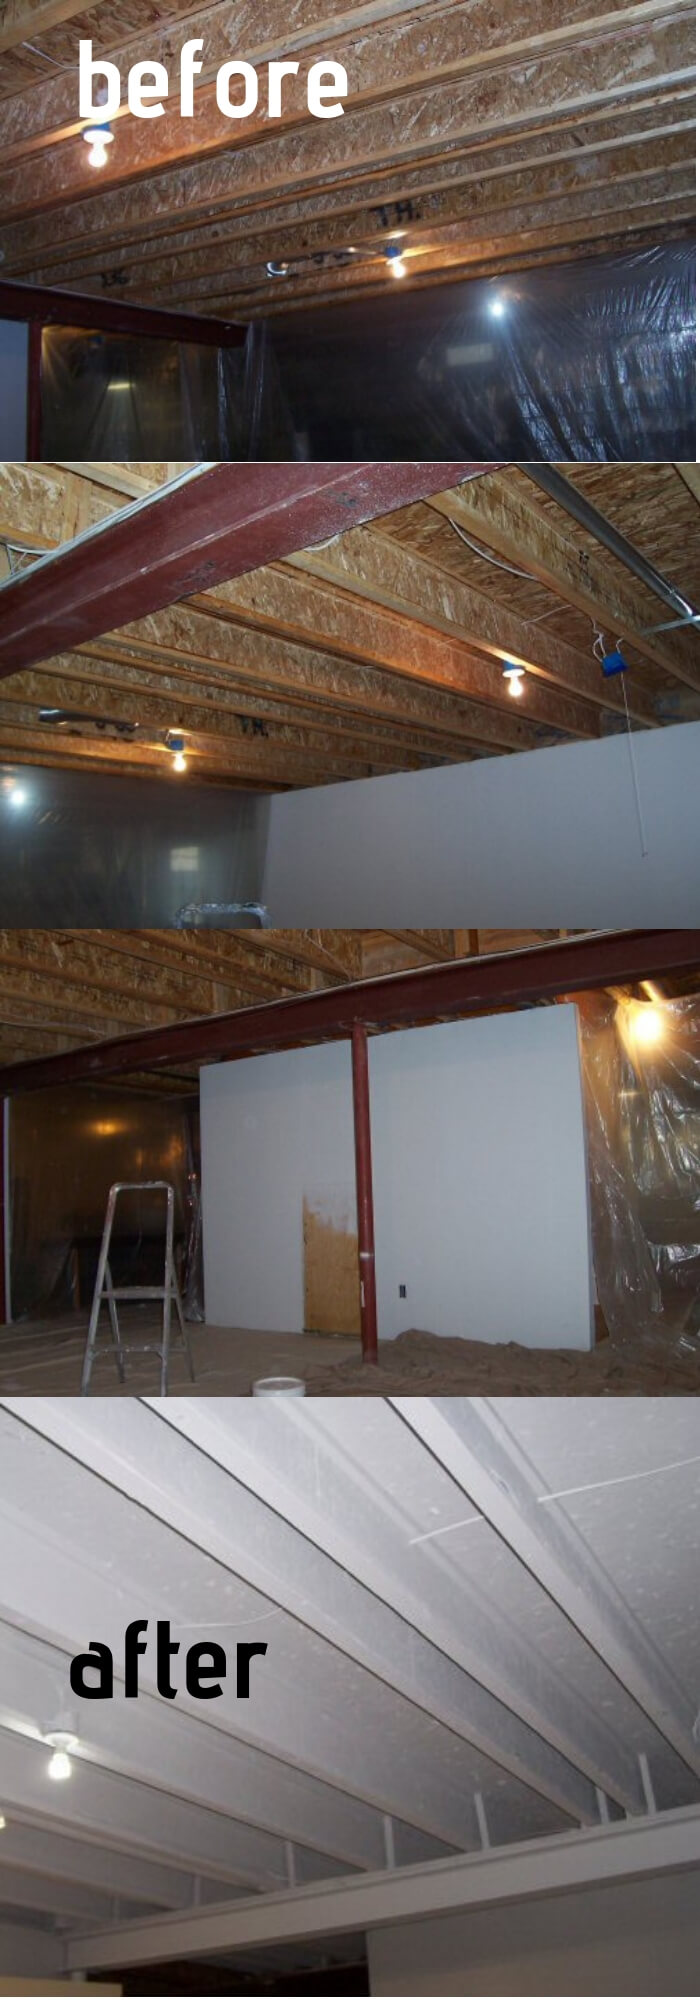 15 Best Diy Basement Ceiling Ideas Designs For 2021